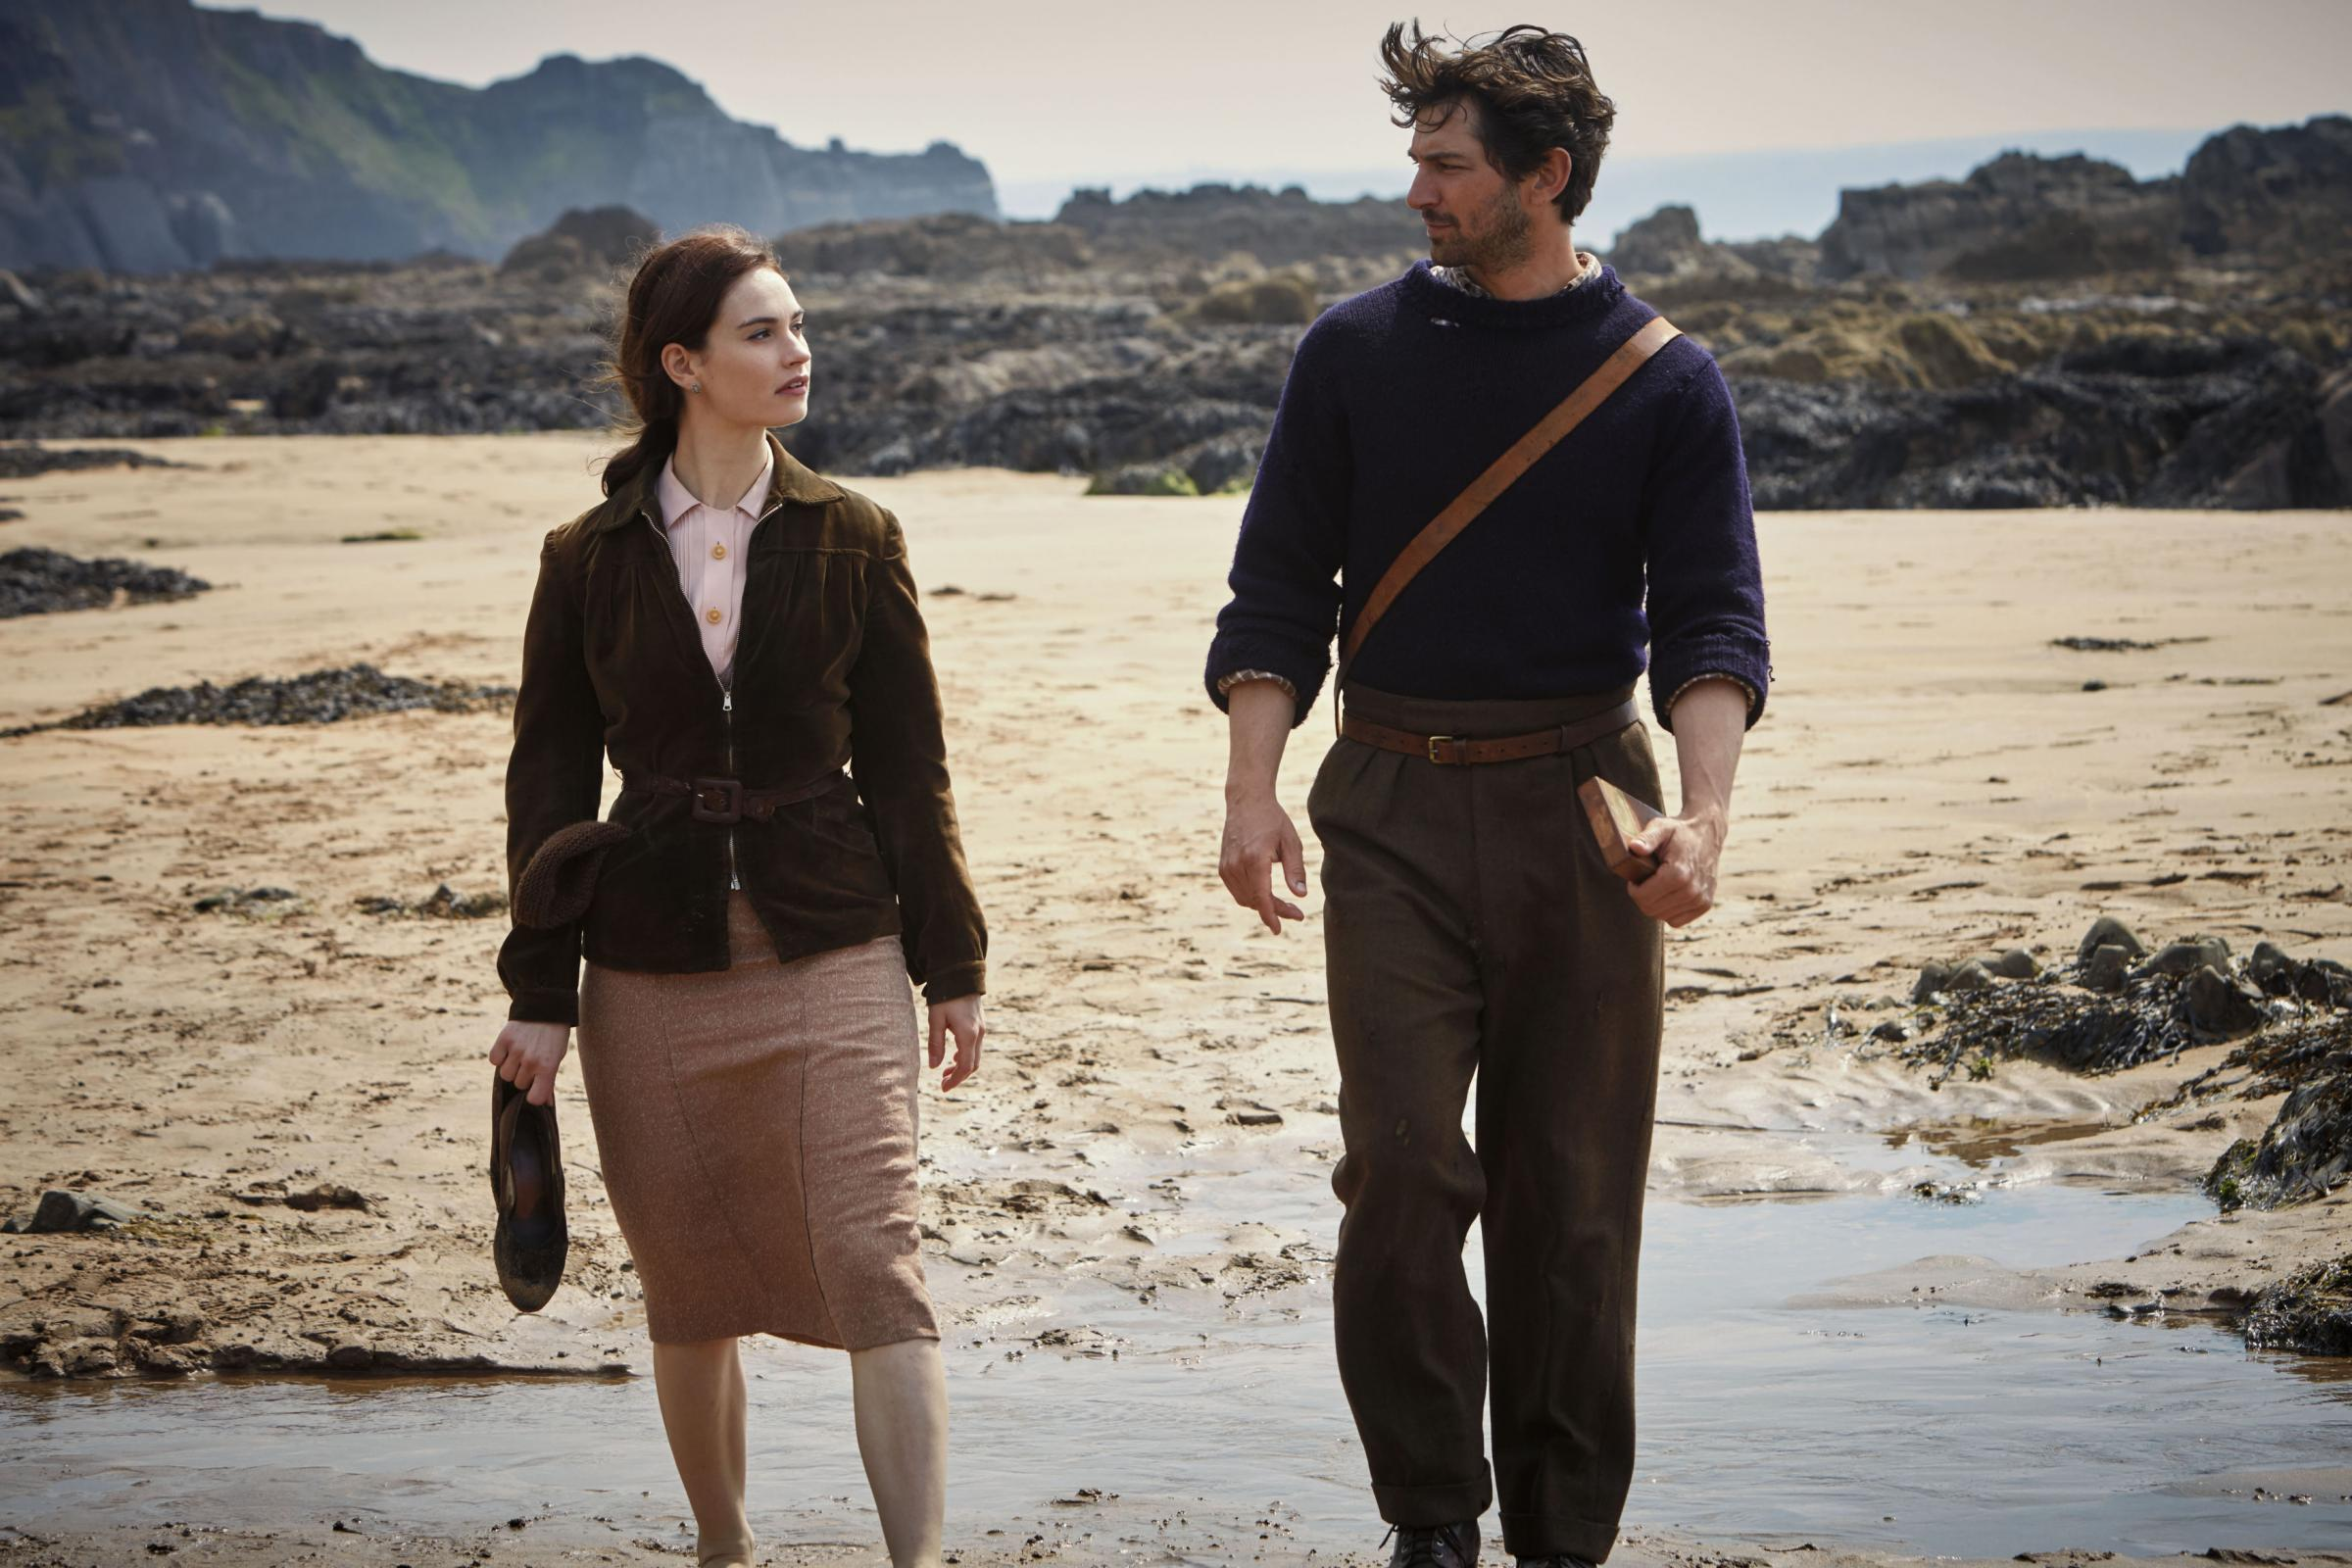 Lily James as Juliet Ashton and Michiel Huisman as Dawsey Adams take a stroll on the beach in The Guernsey Literary And Potato Peel Pie Society